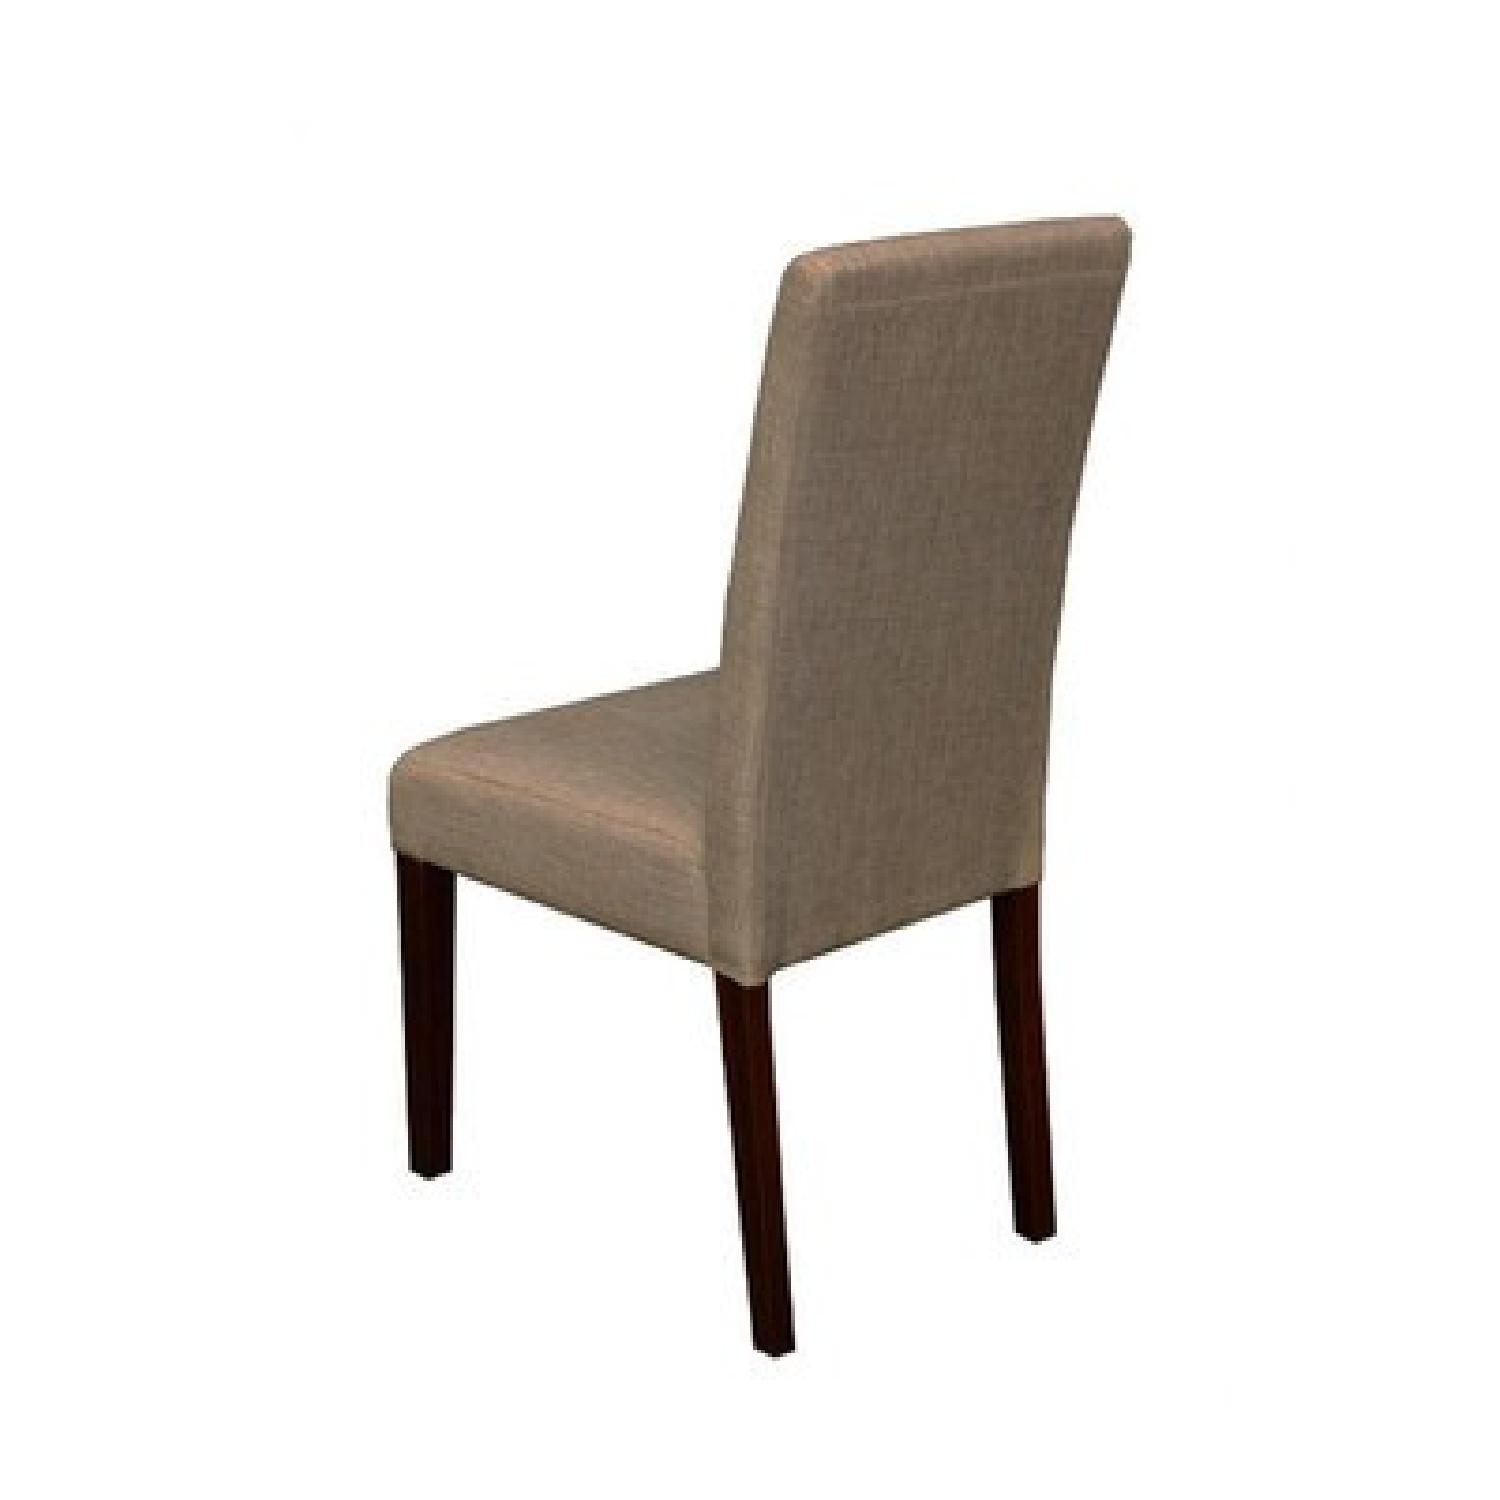 Monsoon Pacific Beige High-Backed Dining Chairs - image-2